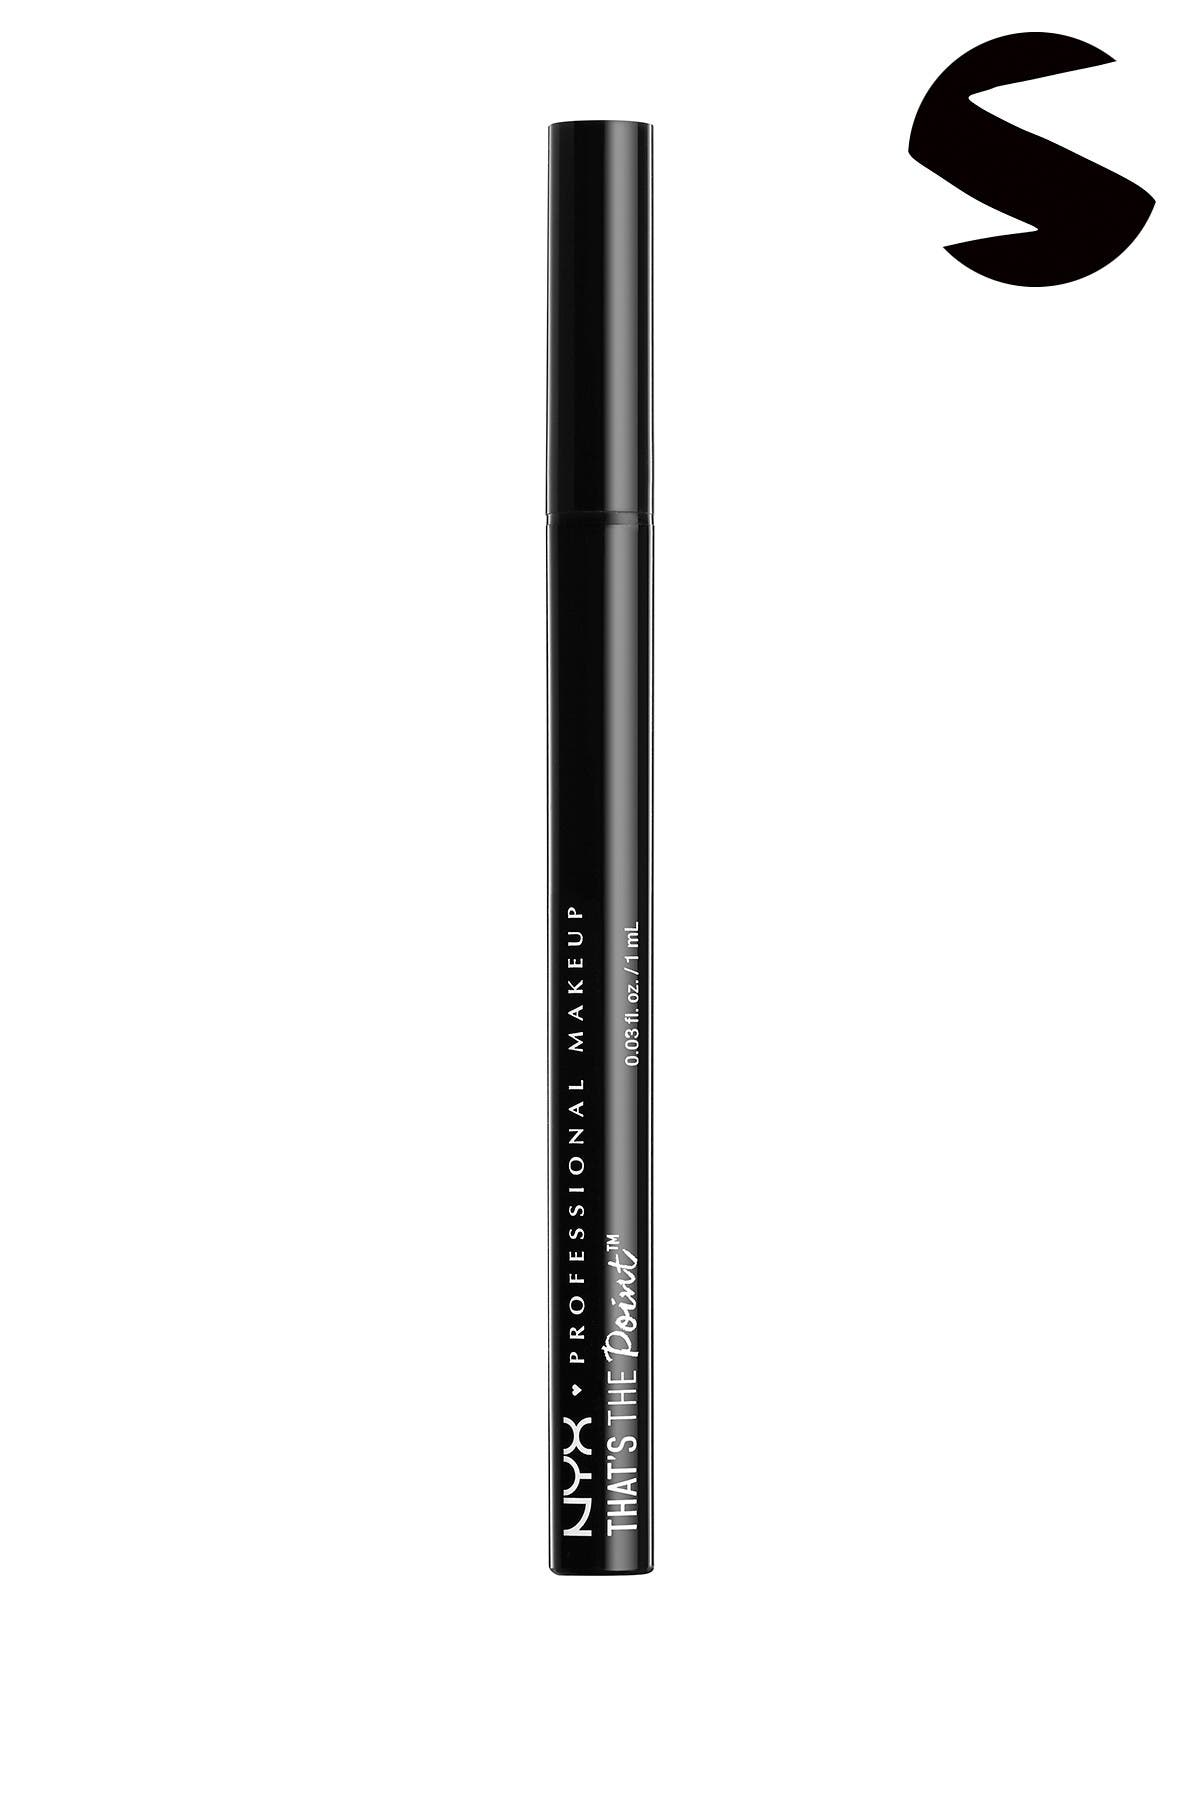 Image of NYX COSMETICS That's the Point Super Sketchy Eyeliner - Black